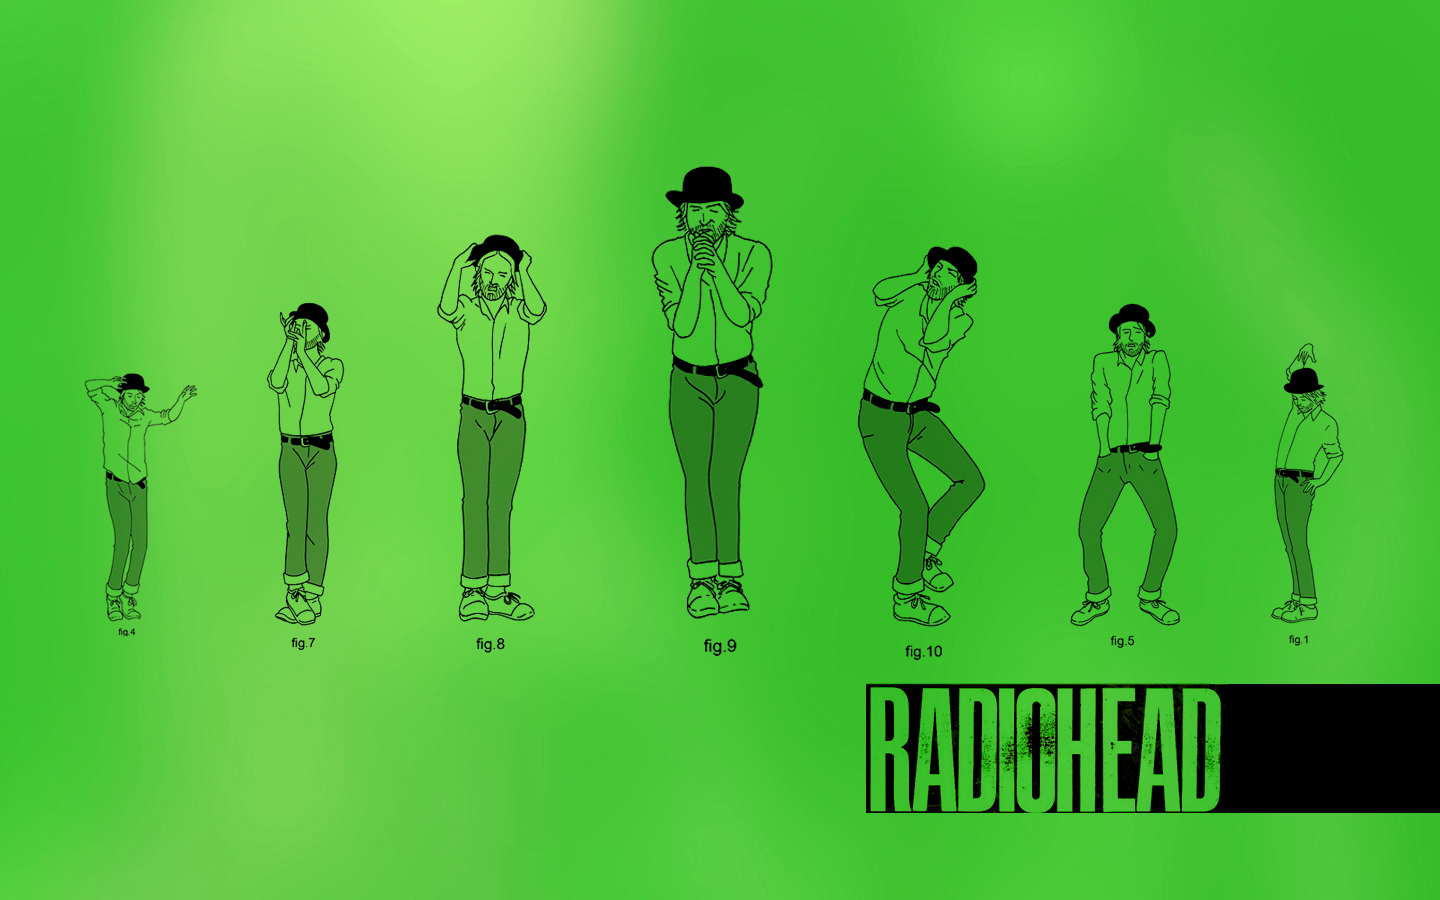 Radiohead images lotus flower dance hd wallpaper and background radiohead images lotus flower dance hd wallpaper and background photos izmirmasajfo